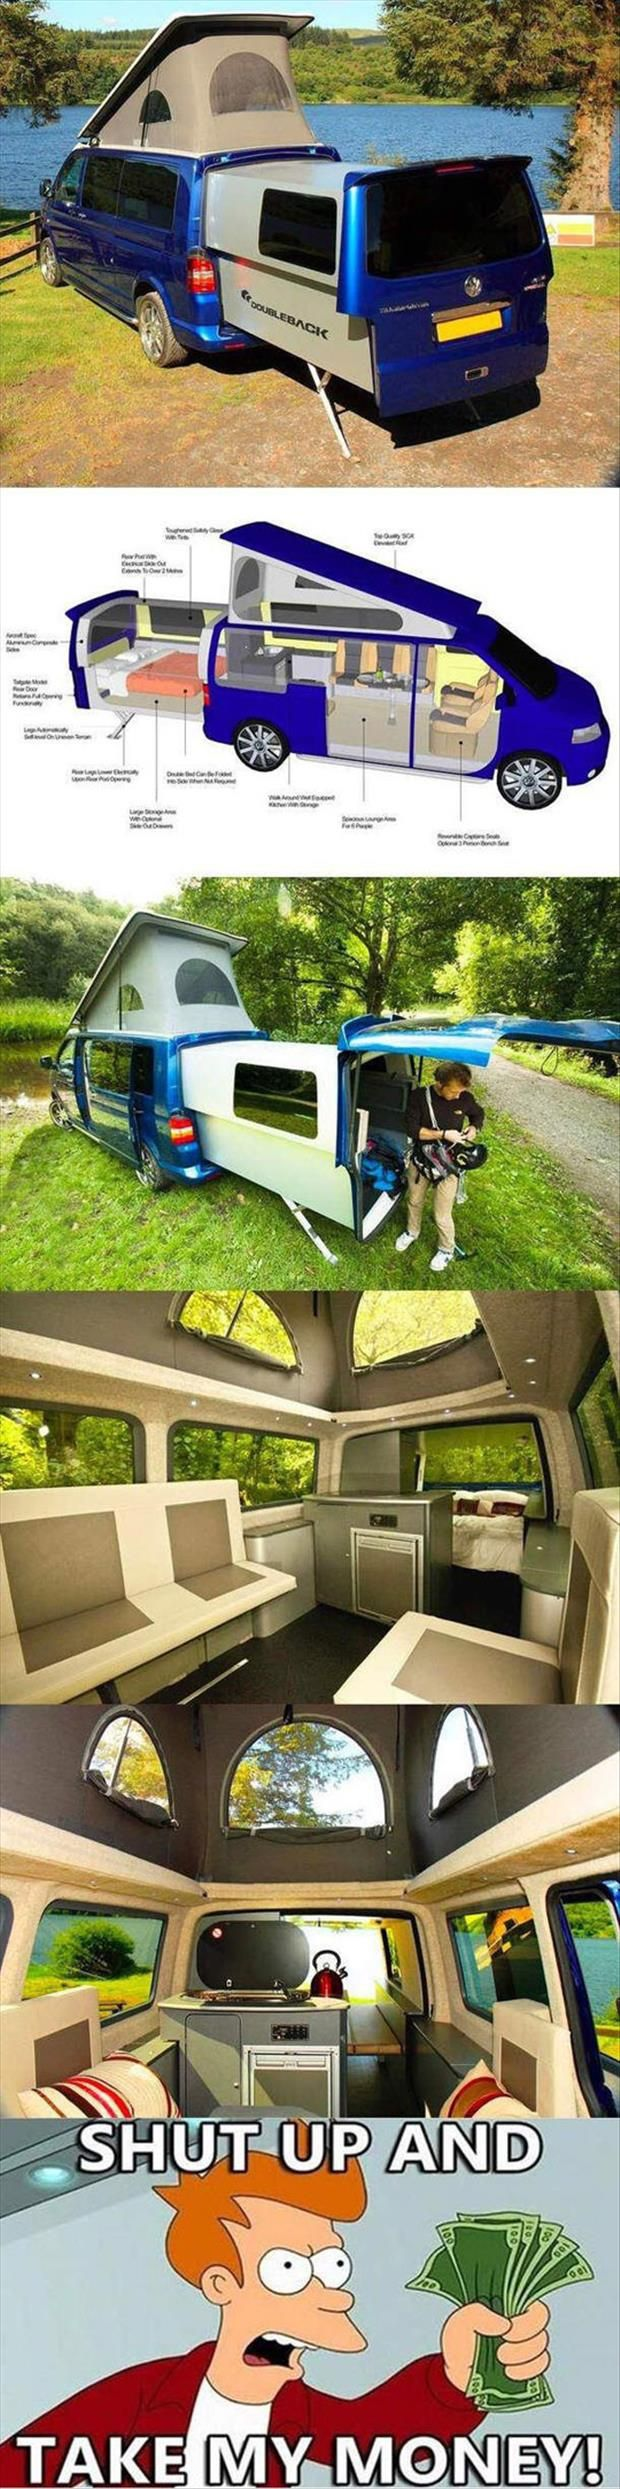 Funny pictures about an amazing van for campers oh and cool pics about an amazing van for campers also an amazing van for campers photos